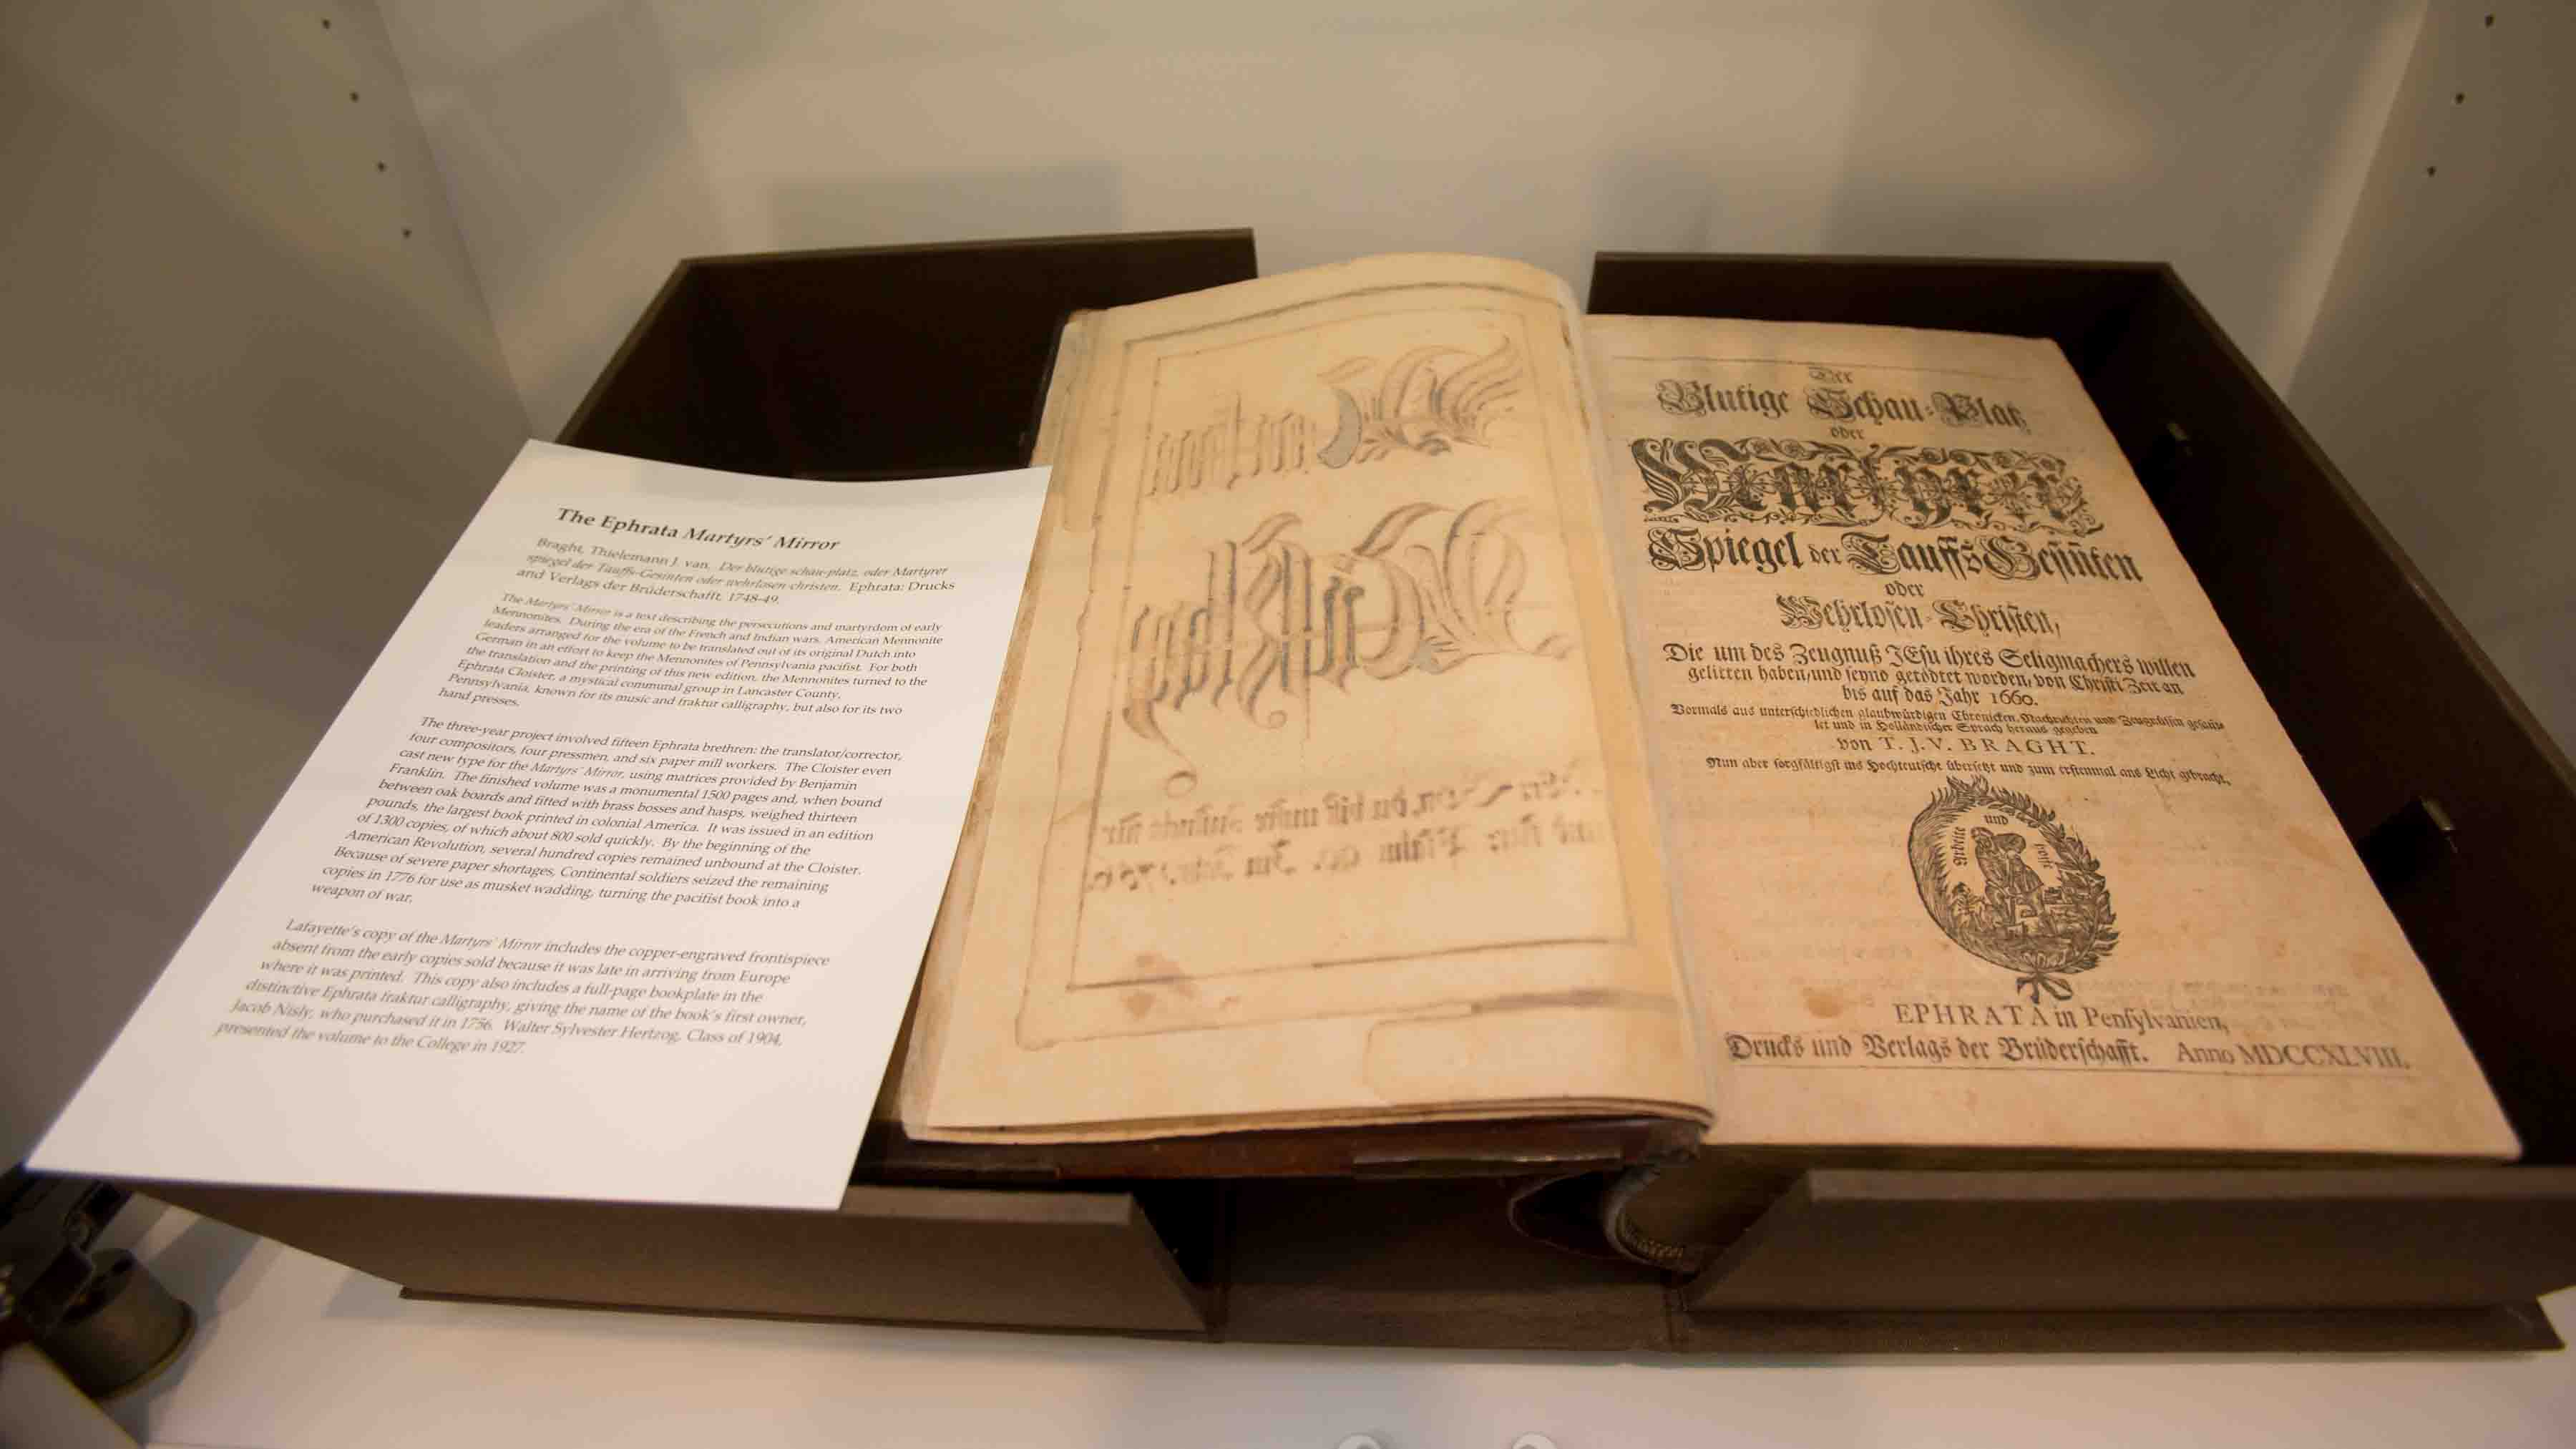 Martyrs Mirror, the largest book printed in colonial America